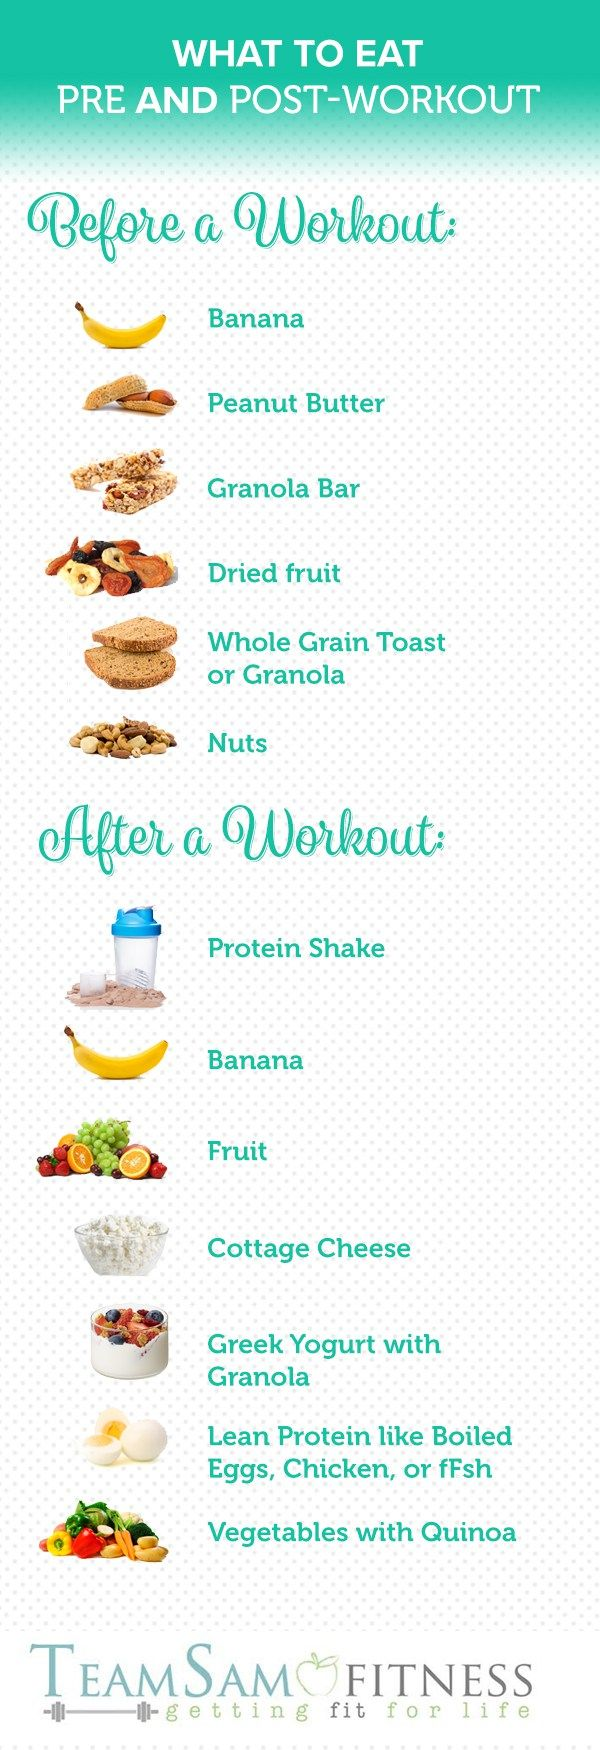 Best 25+ After workout ideas on Pinterest